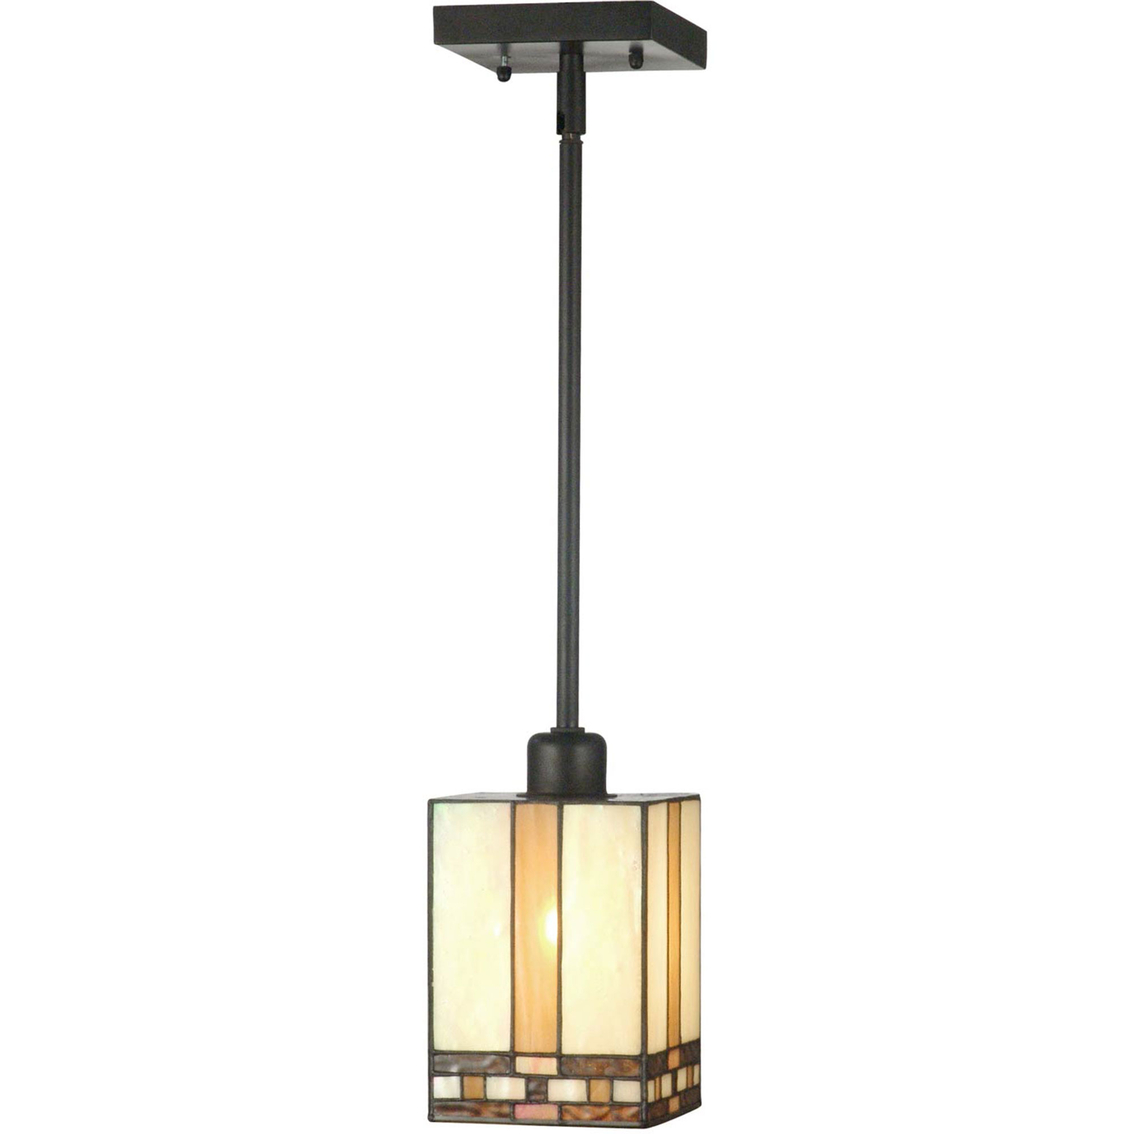 Tiffany Hanging Light Fixtures 100 Tiffany Ceiling Light